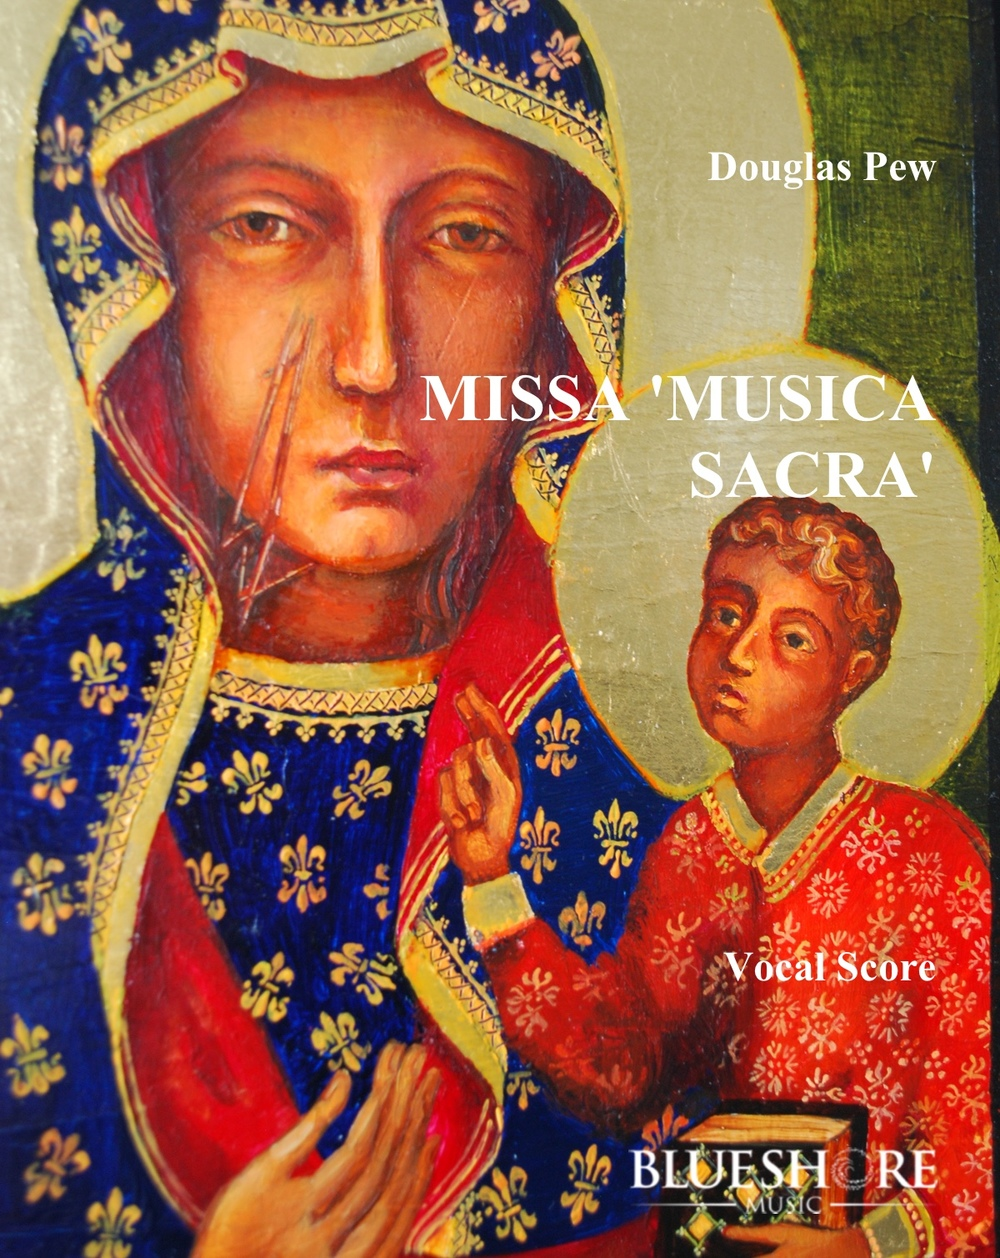 Missa 'Musica Sacra', for SATB and Organ, or Double Chorus a cappella